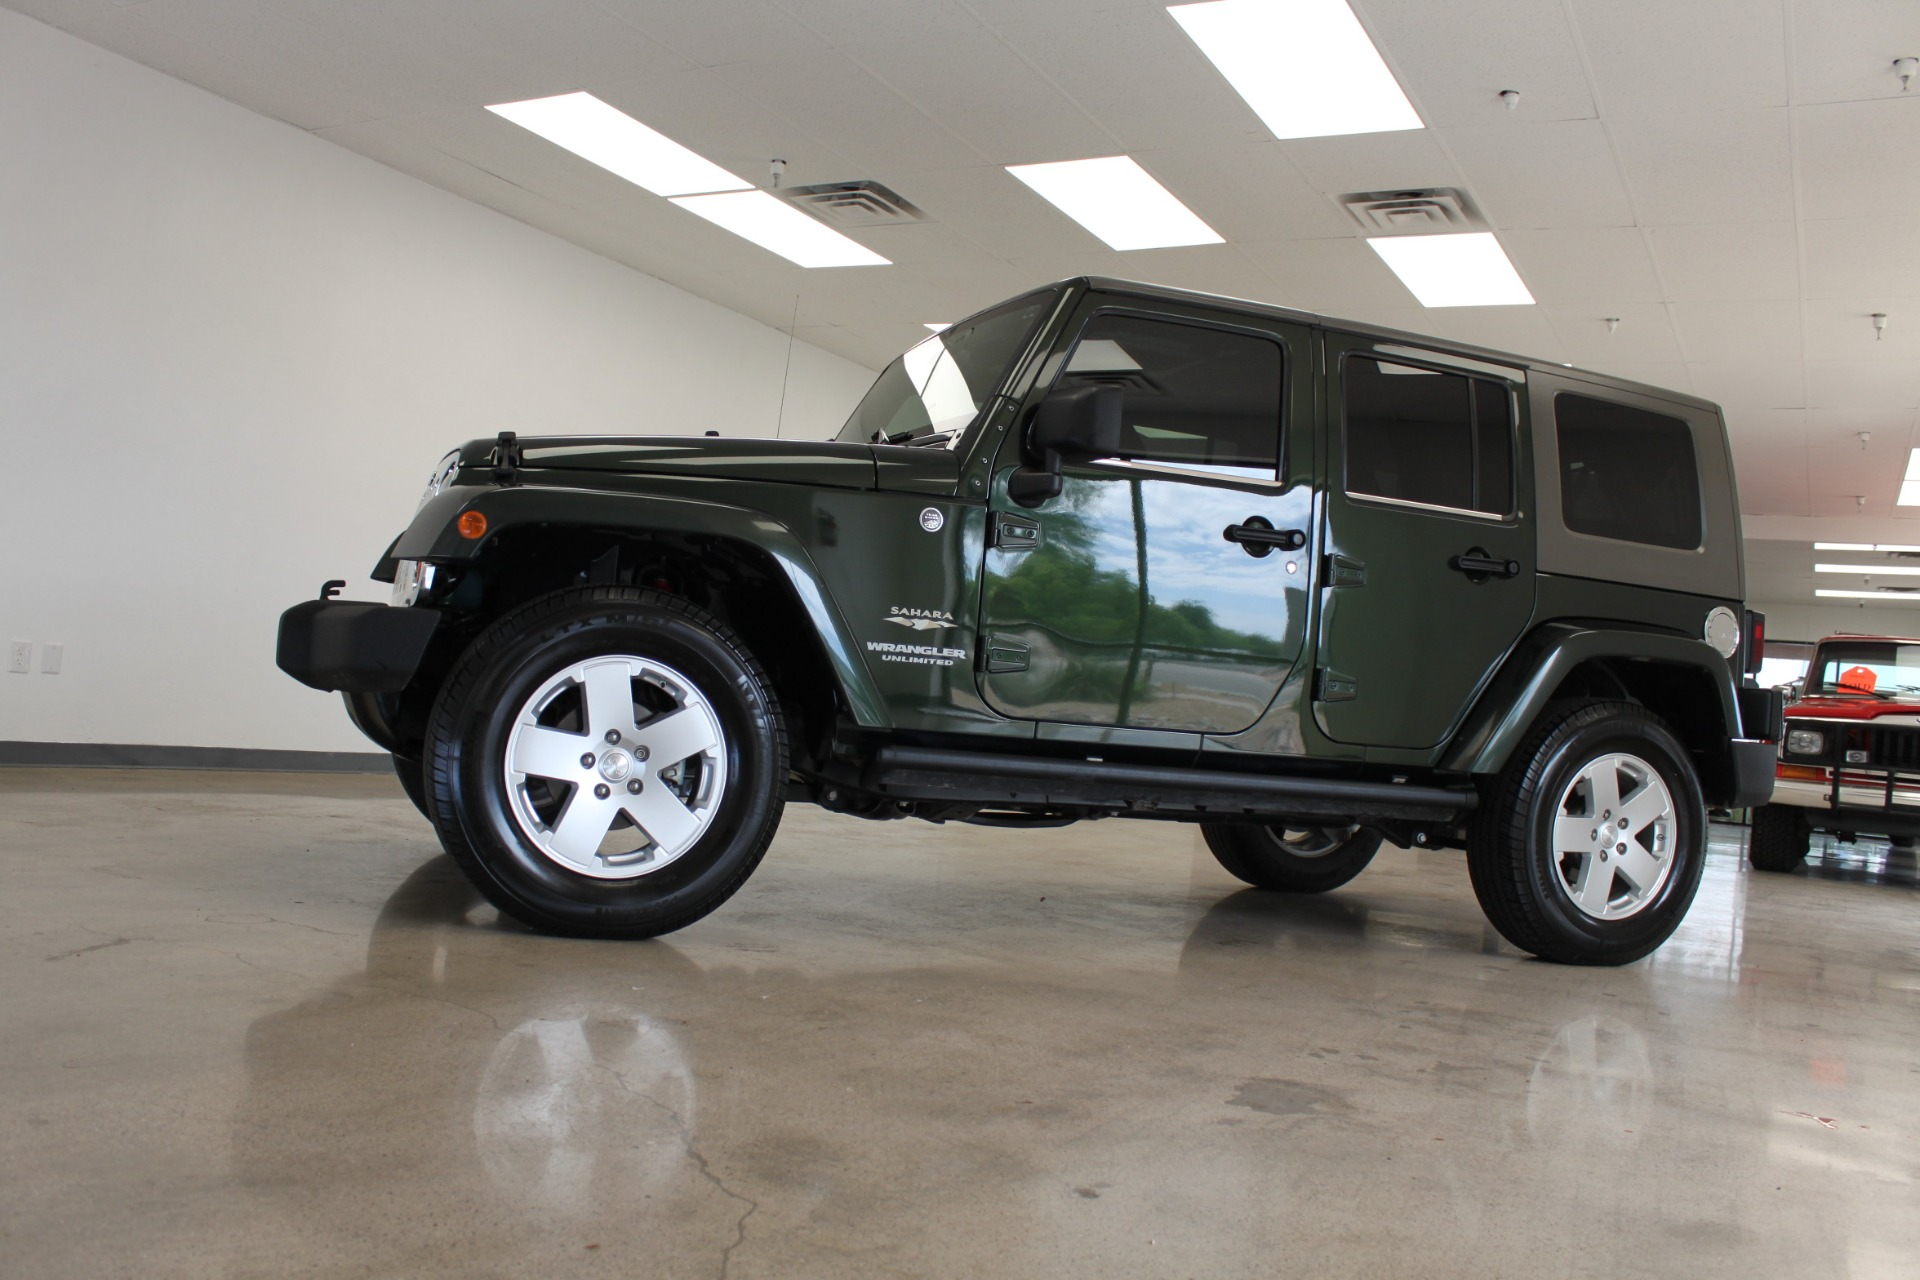 Used-2010-Jeep-Wrangler-Unlimited-Sahara-4X4-Lexus